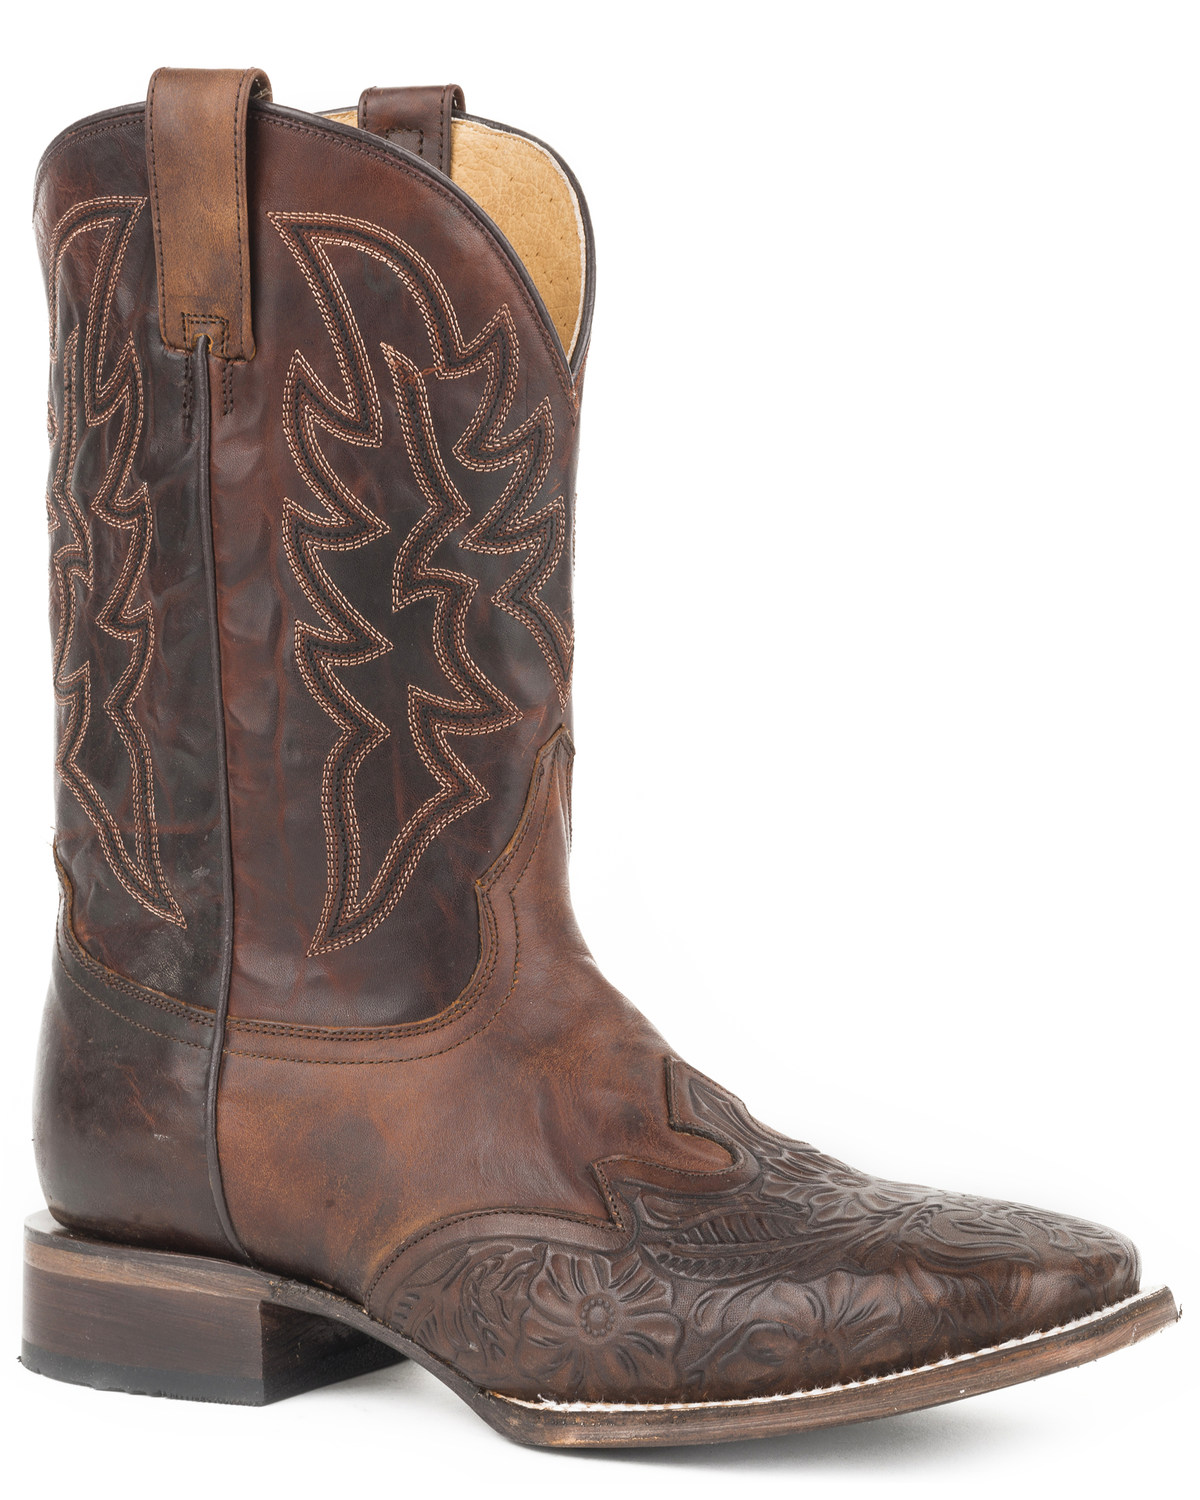 8847083cf4c Tooled Leather Cowboy Boots - Best Picture Of Boot Imageco.Org